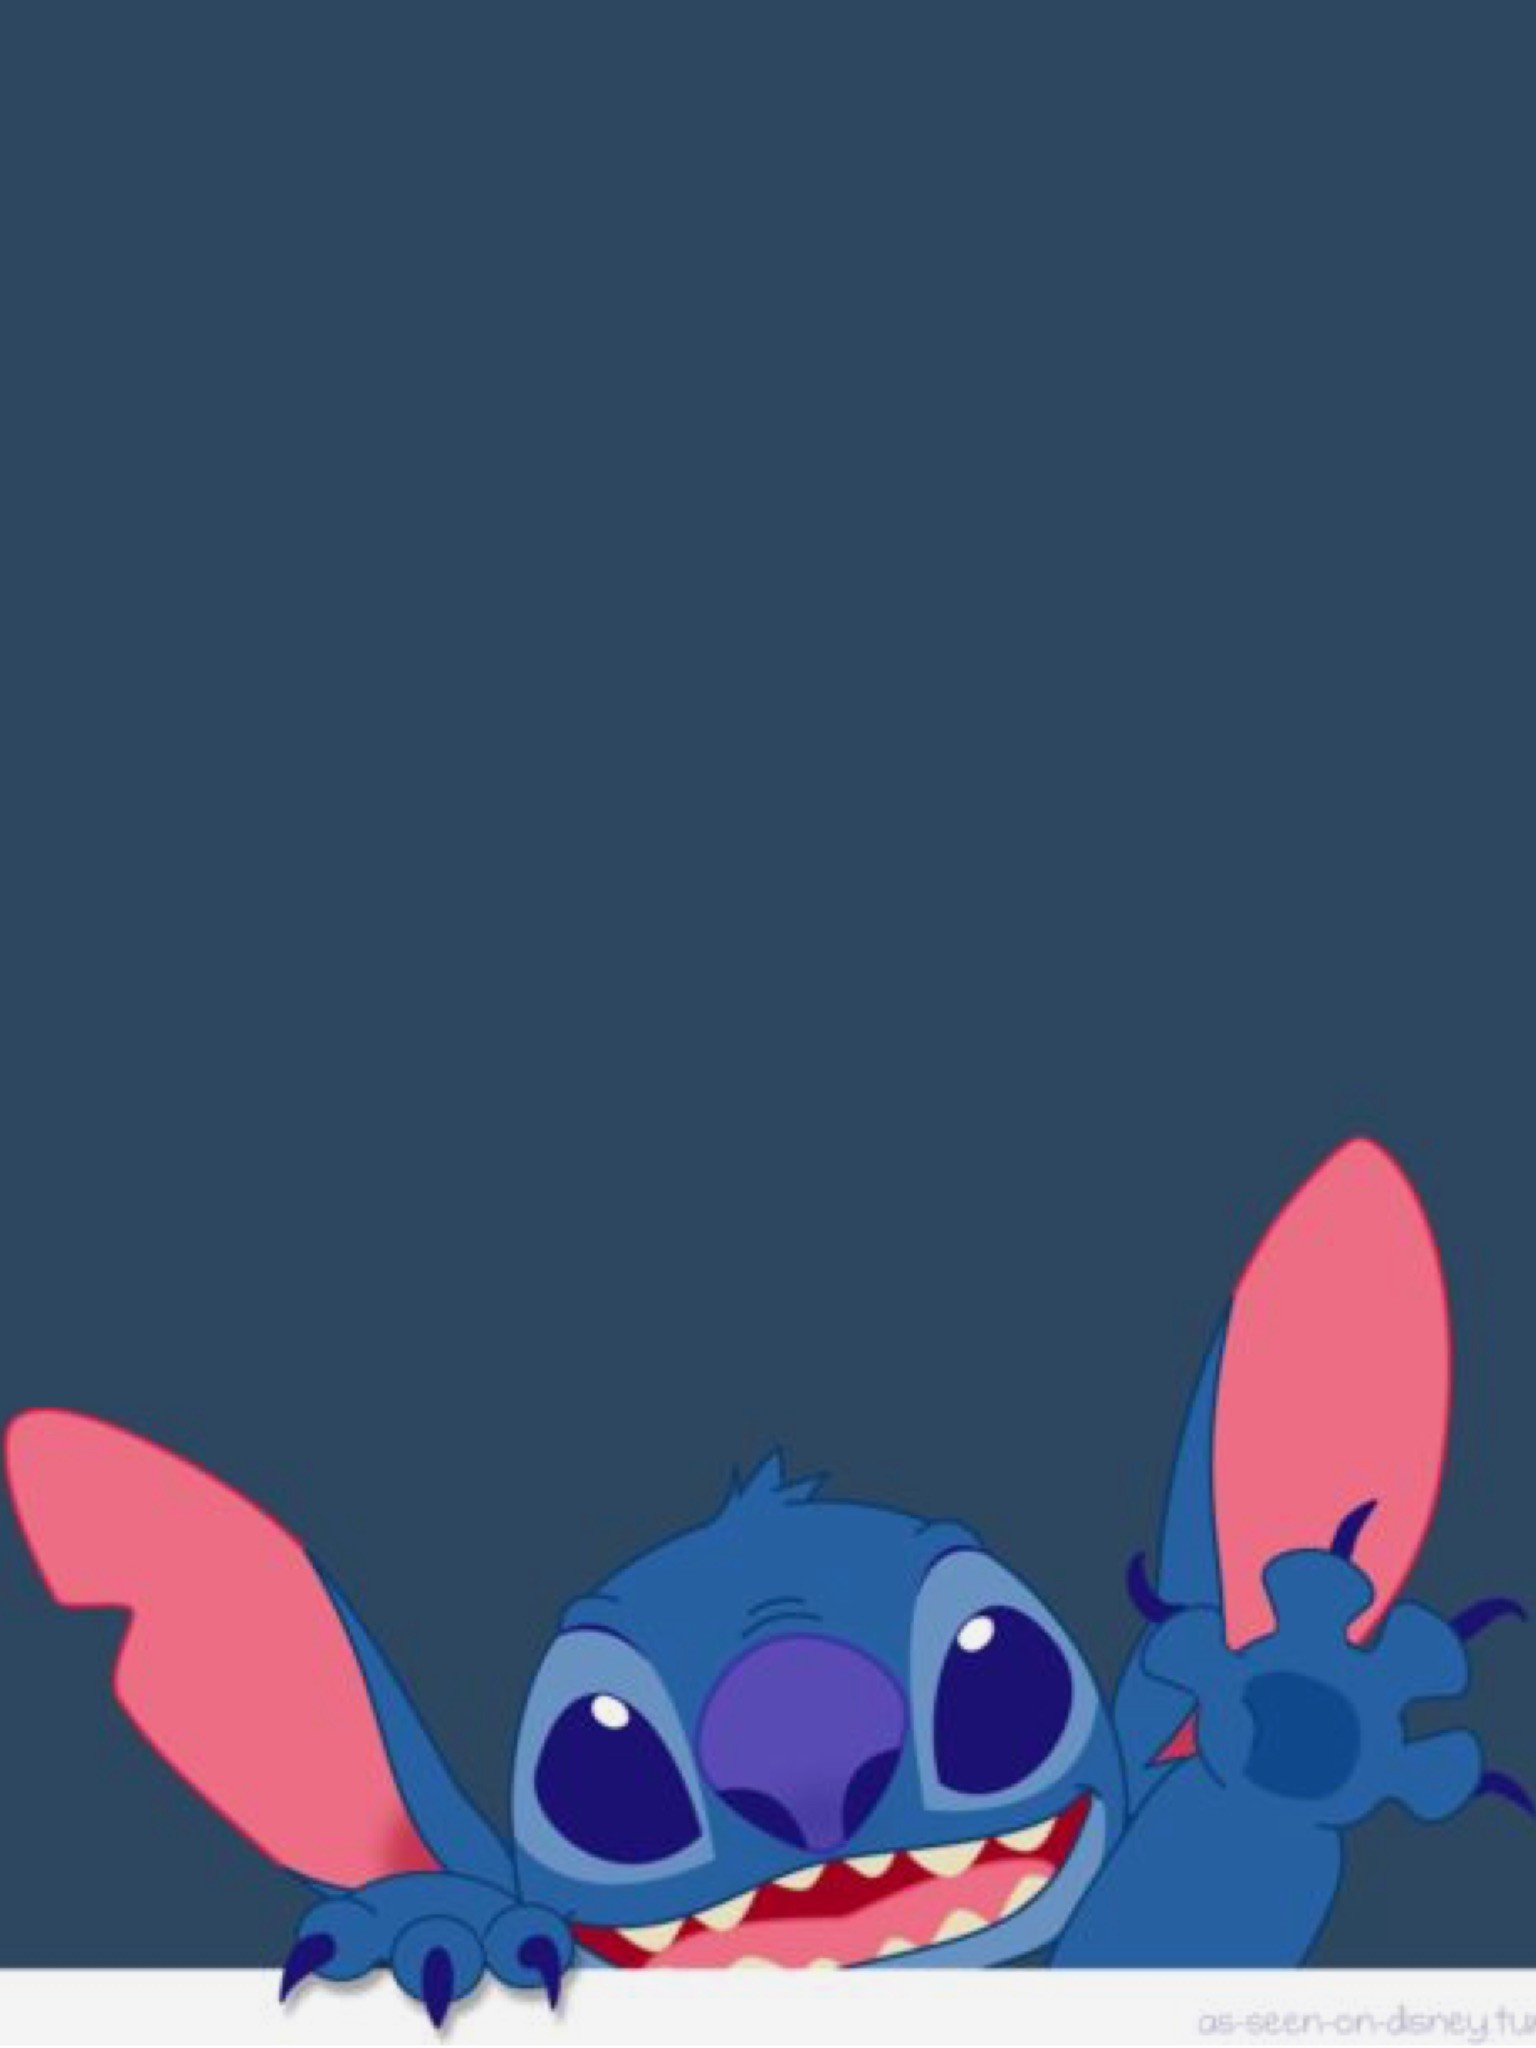 1536x2048 Tumblr Iphone Wallpaper Mobile Wallpapers Disney Stitch Cute